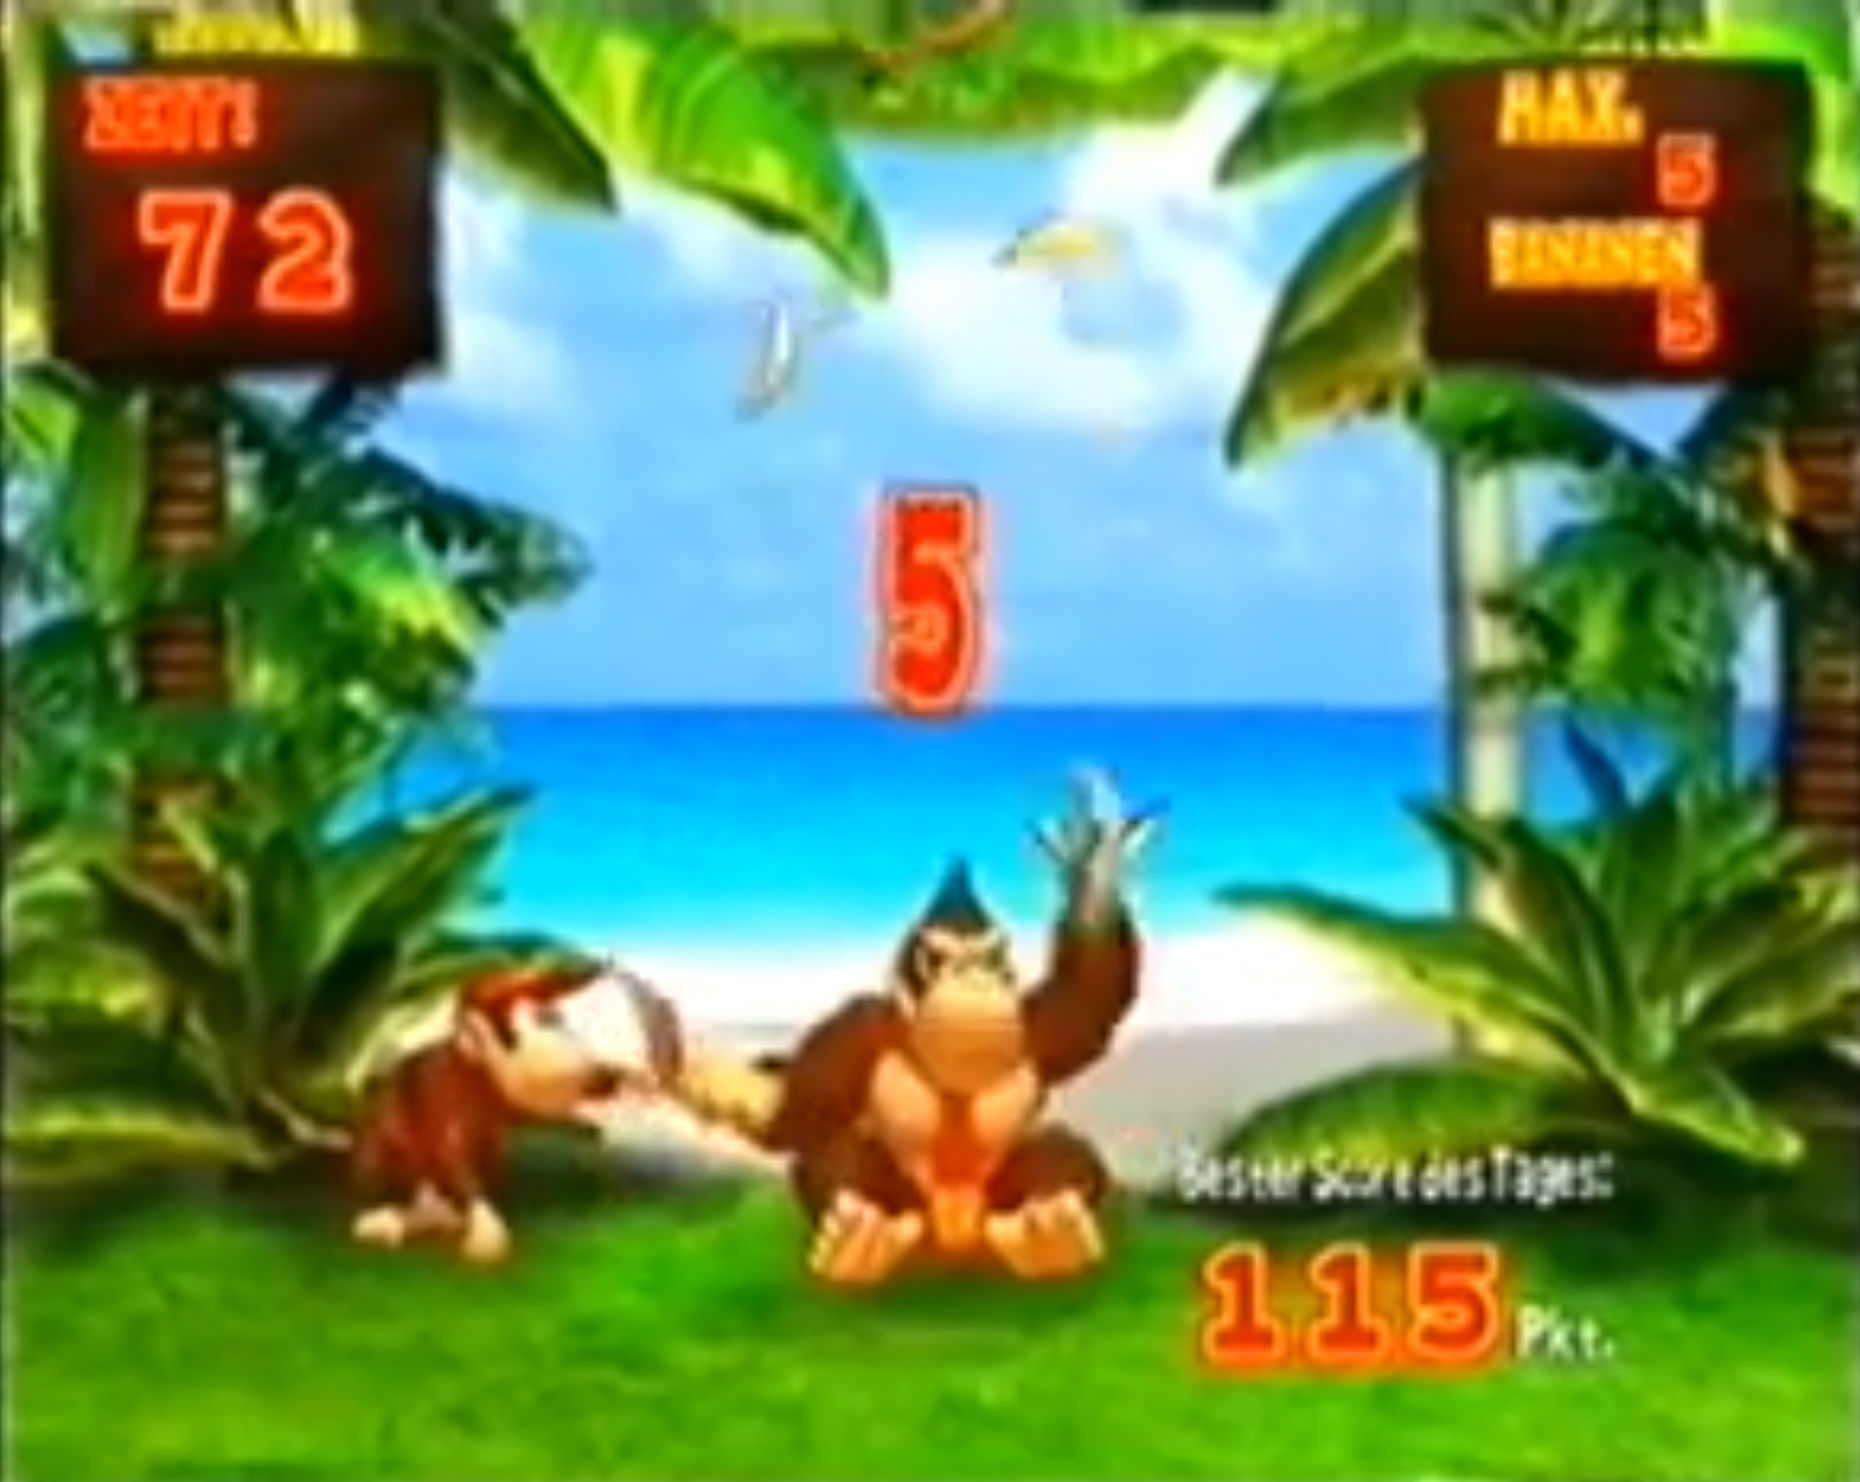 Donkey Konga GameCube Playing Banana Juggle, one of the minigames.